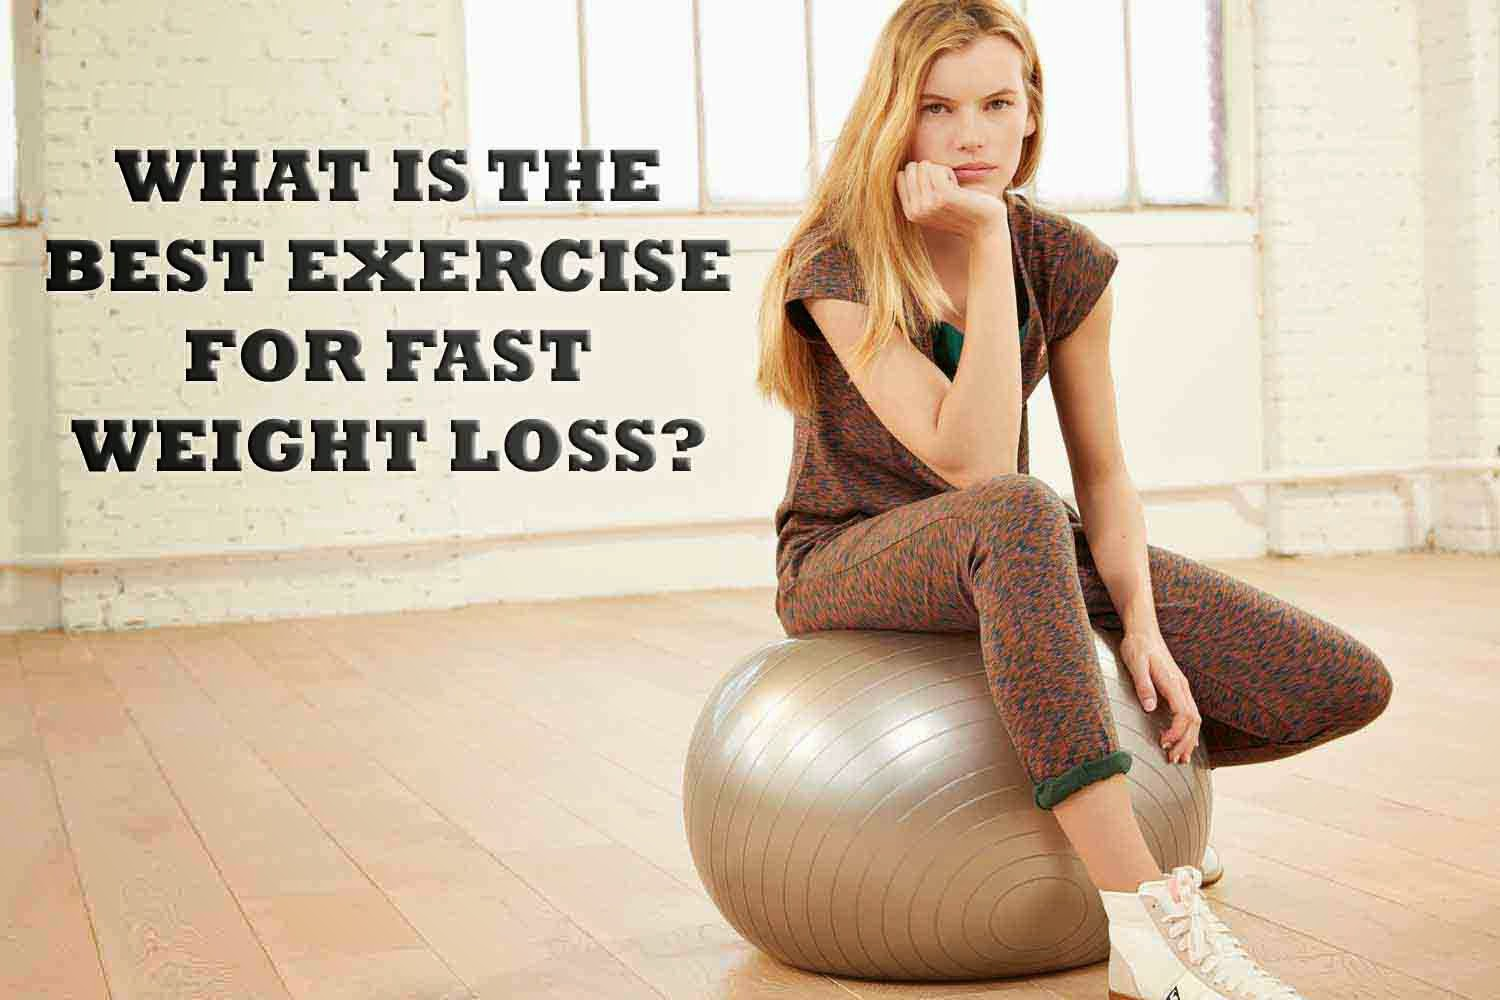 What Is The Best Exercise For Fast Weight Loss?